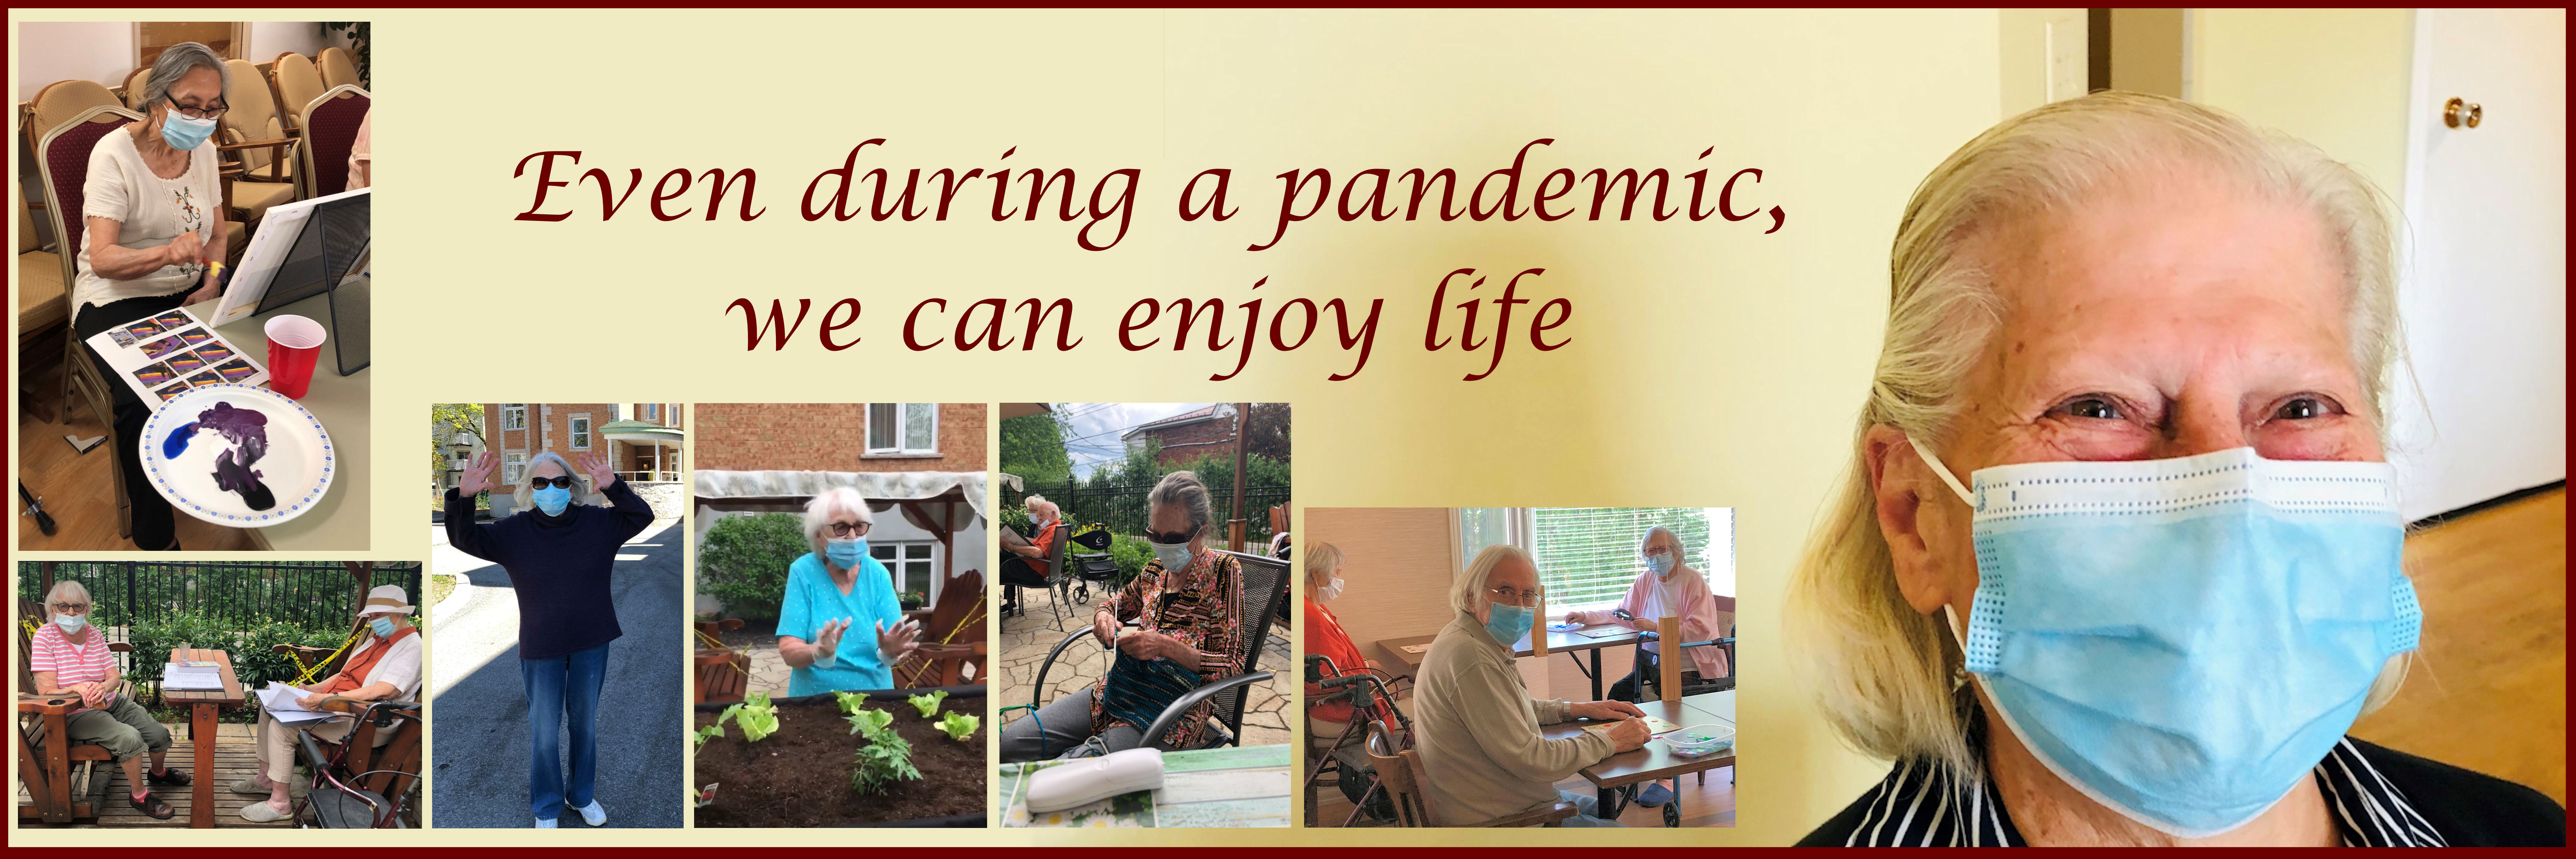 Even during a pandemic, we can enjoy life